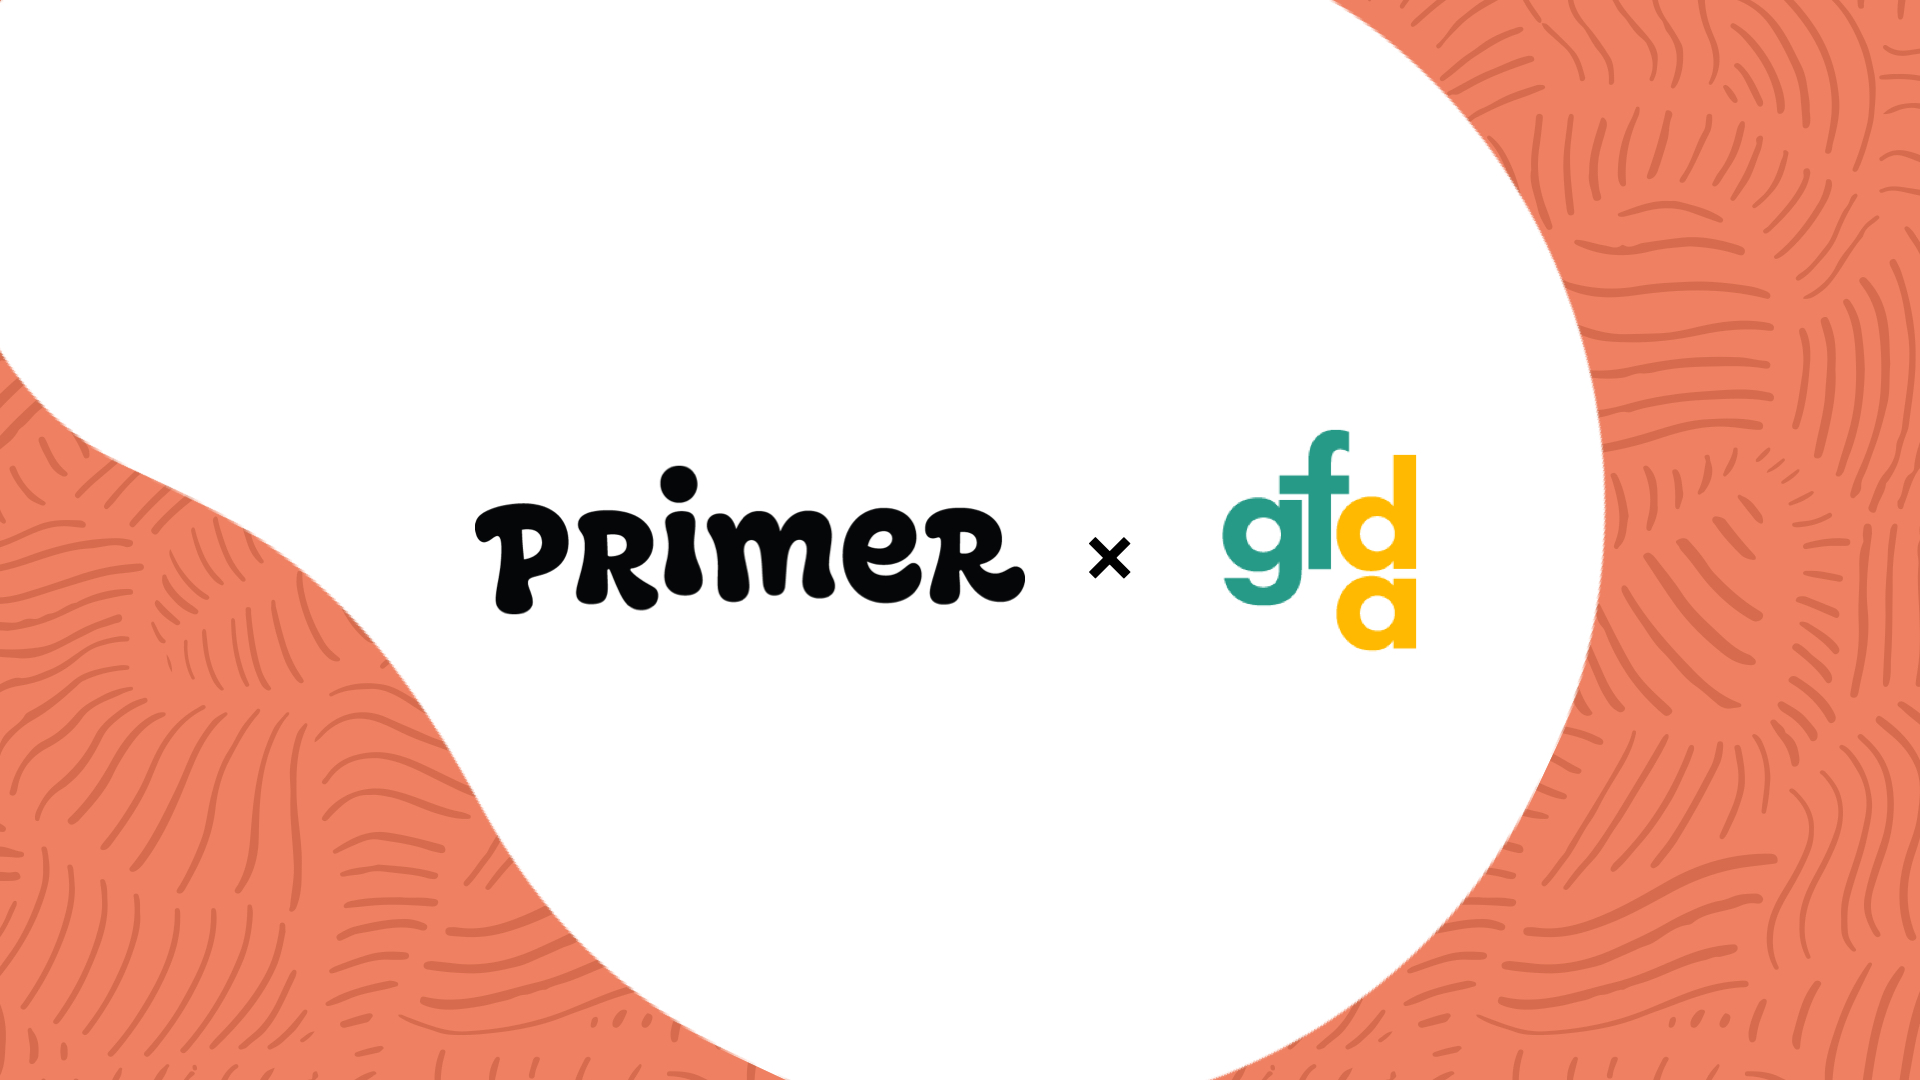 Primer GFDA talk future augmented reality interior design